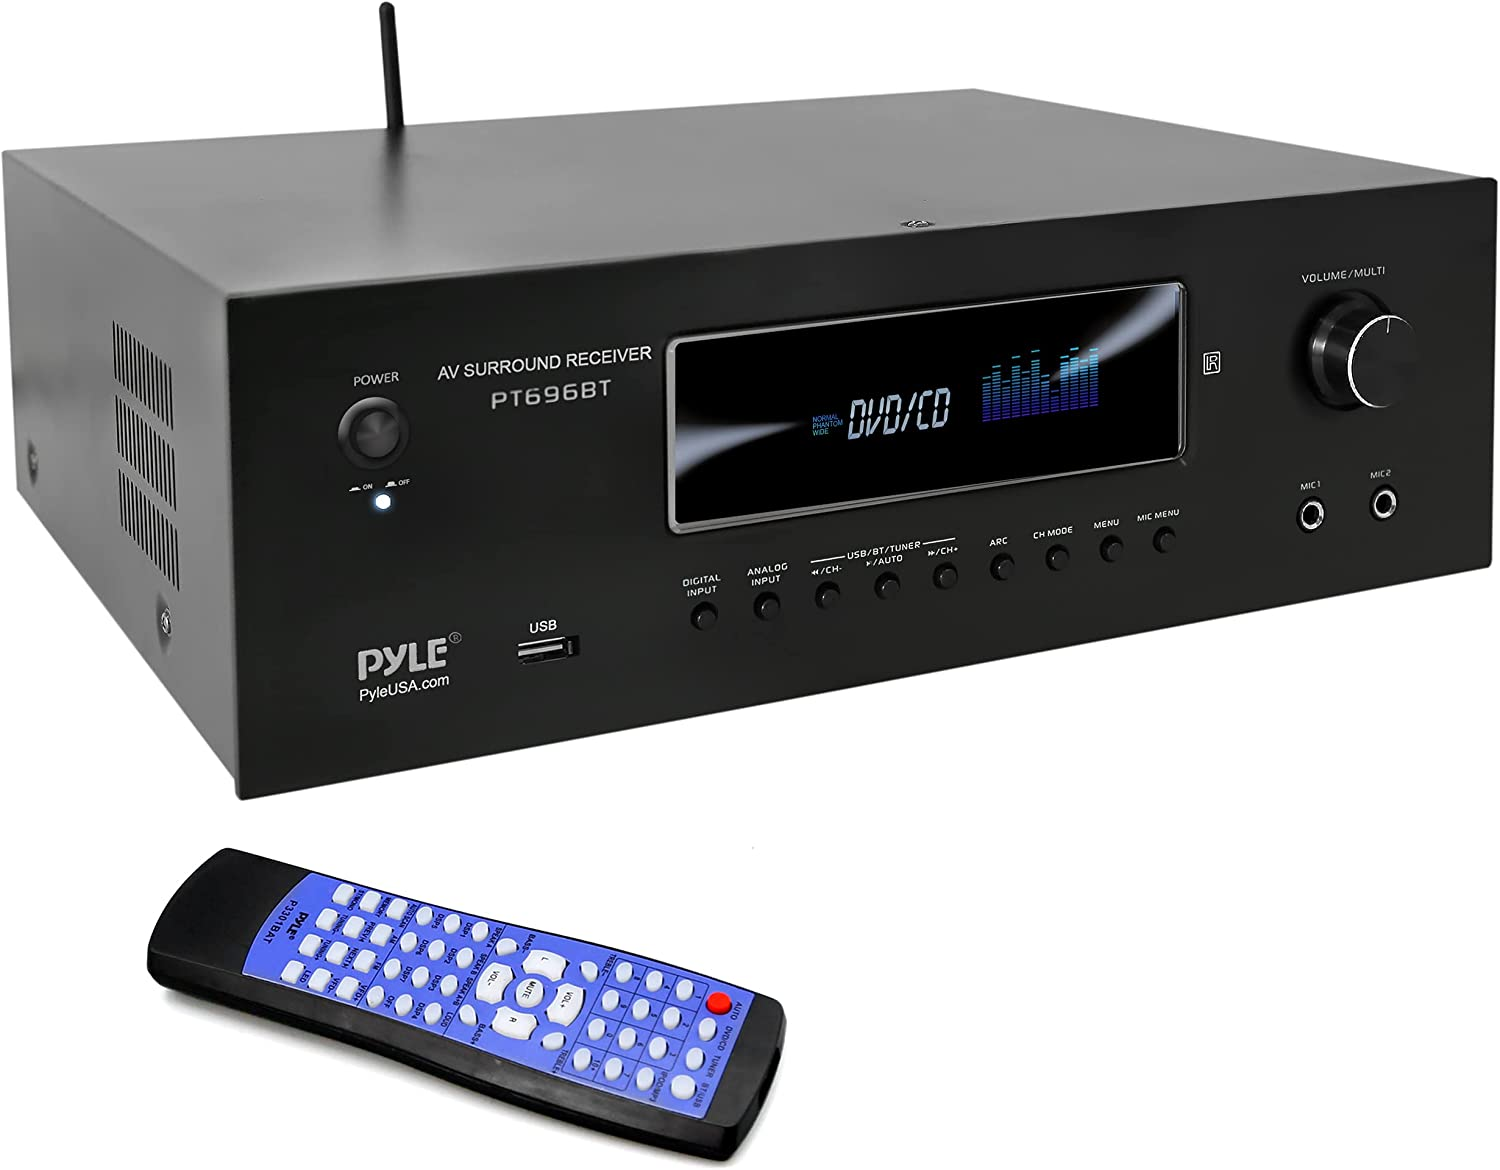 1000W Bluetooth Home Theater Receiver - 5.2-Ch Surround Sound Stereo Amplifier System with 4K Ultra HD, 3D Video & Blu-Ray Video Pass-Through Supports, MP3/USB/AM/FM Radio - Pyle